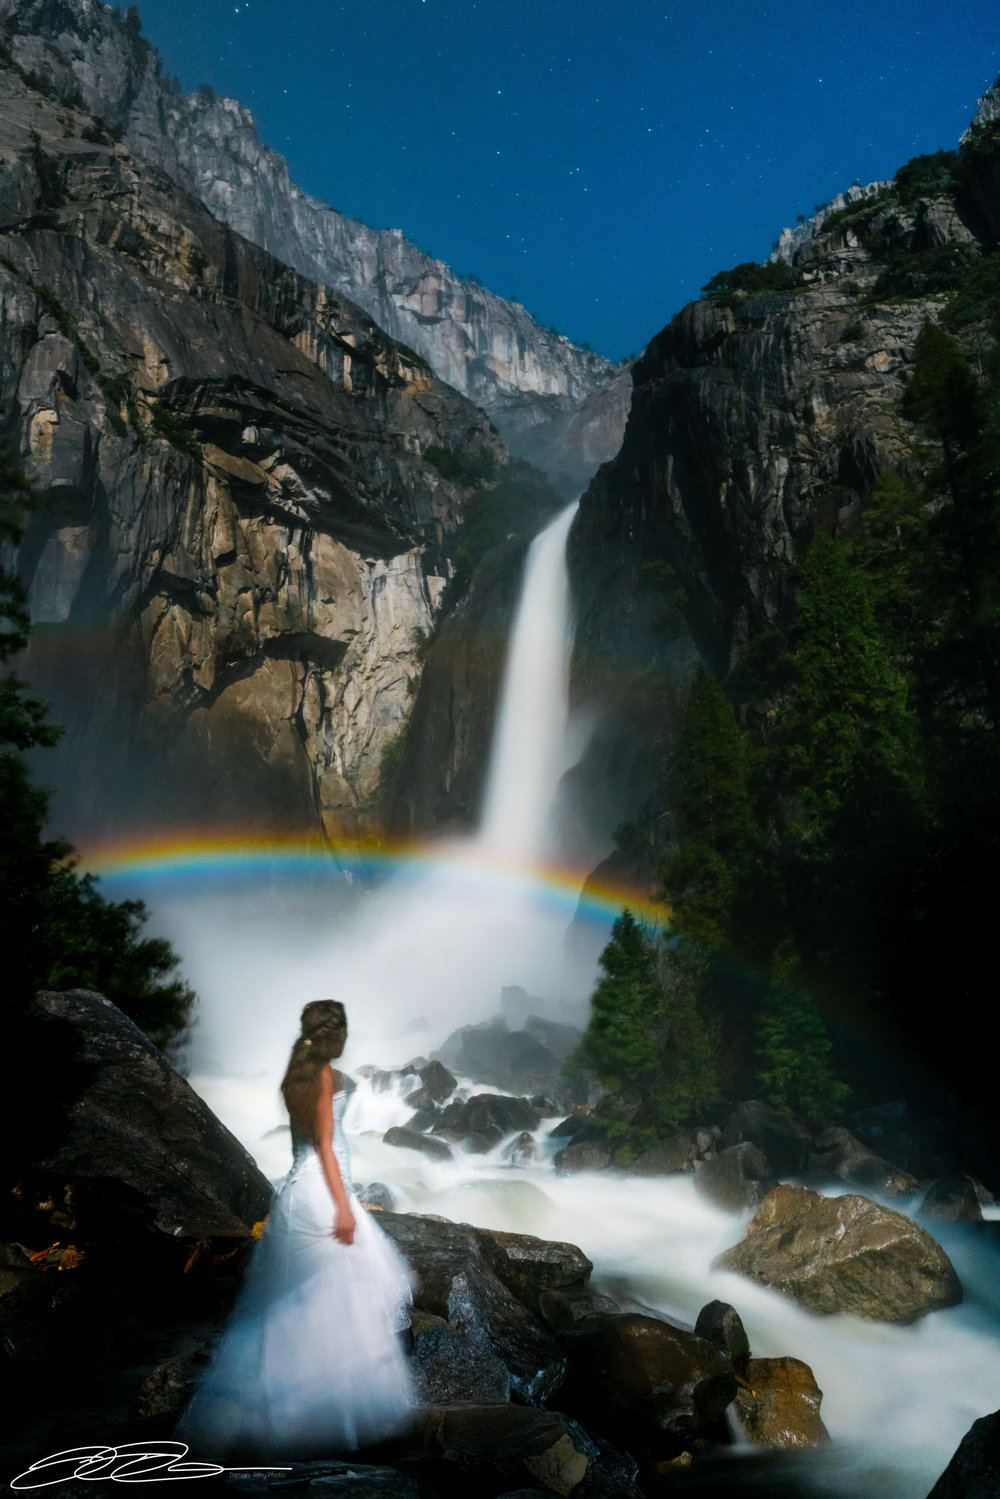 Yosemite Moonbowonly available when water conditions support and on a full moon - Captured with a bride in wedding gown.